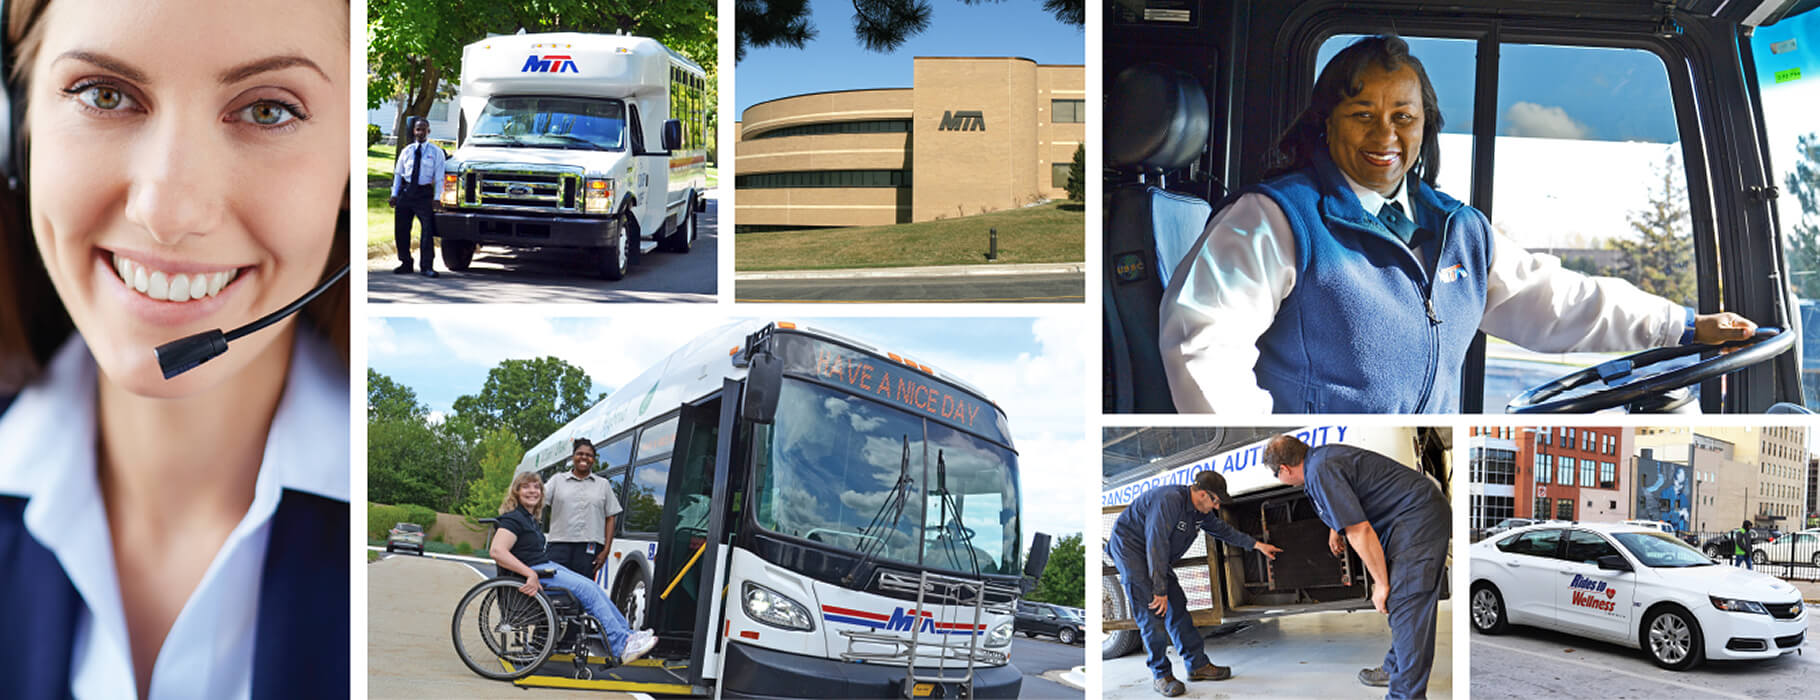 A collage of images showing people working different jobs at MTA Flint.